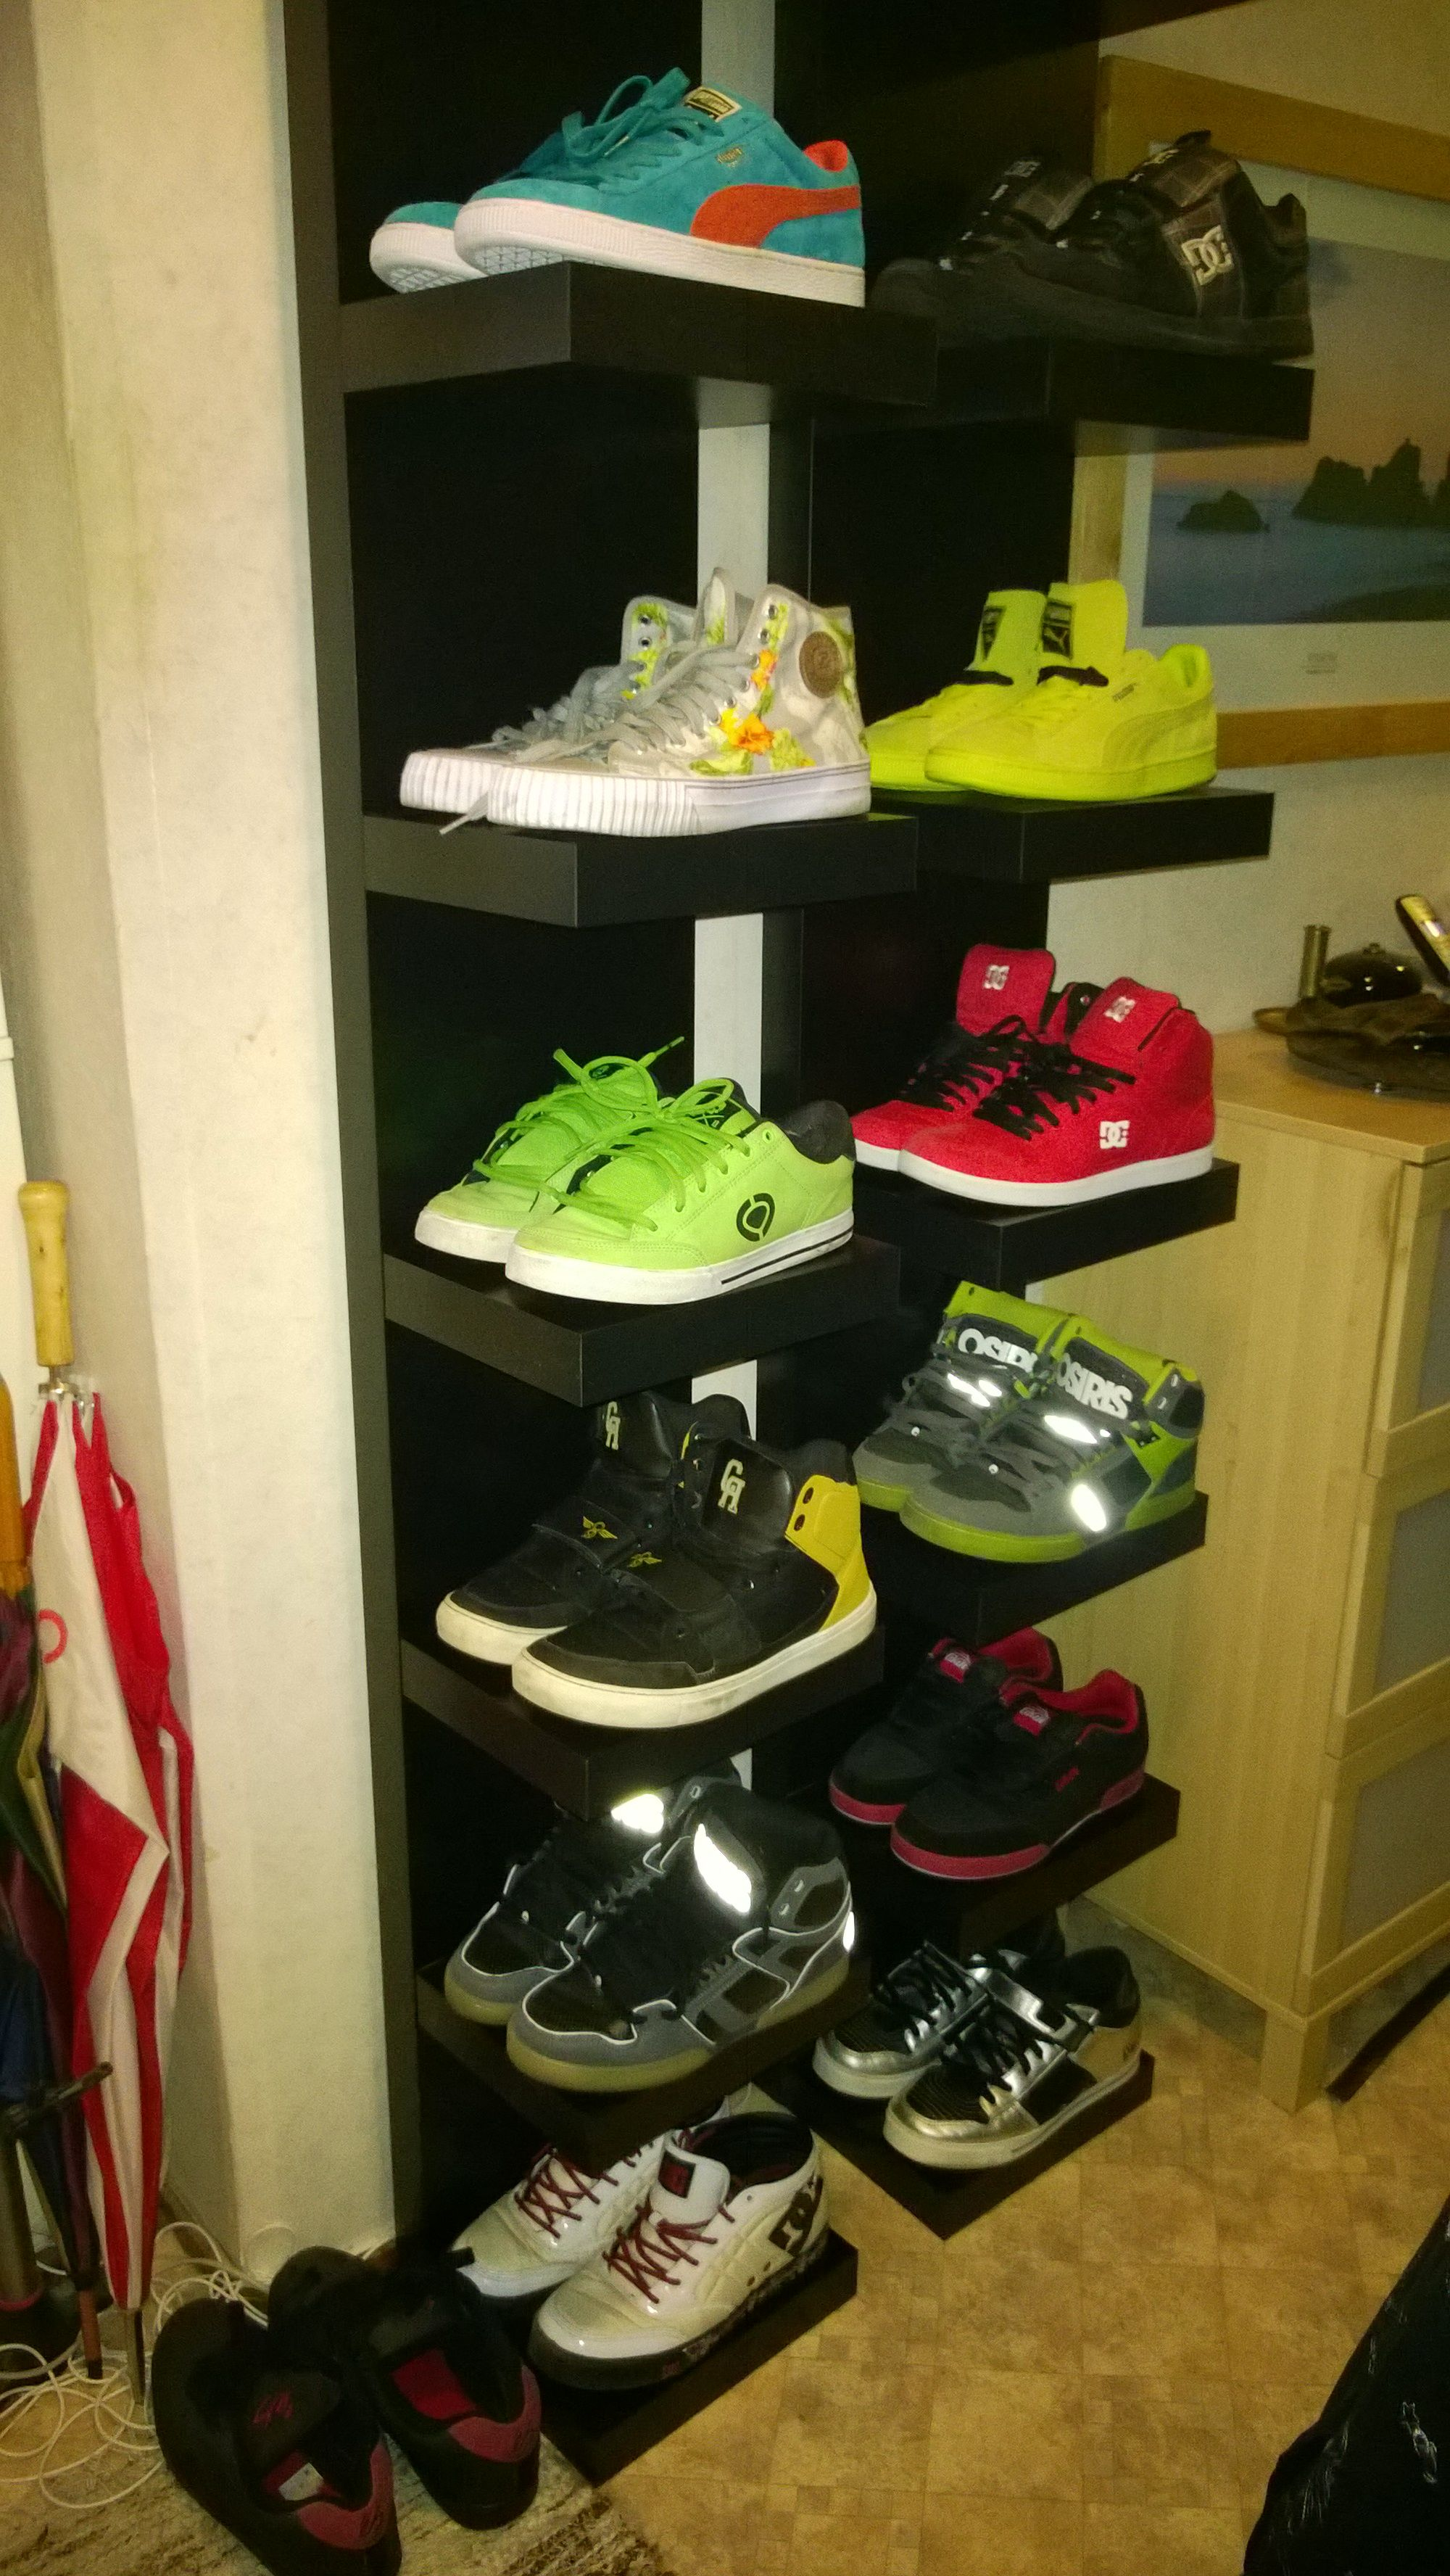 My Own Diy Shoe Shelf Made From Ikea S Lack Shelf Shoe Shelf Diy